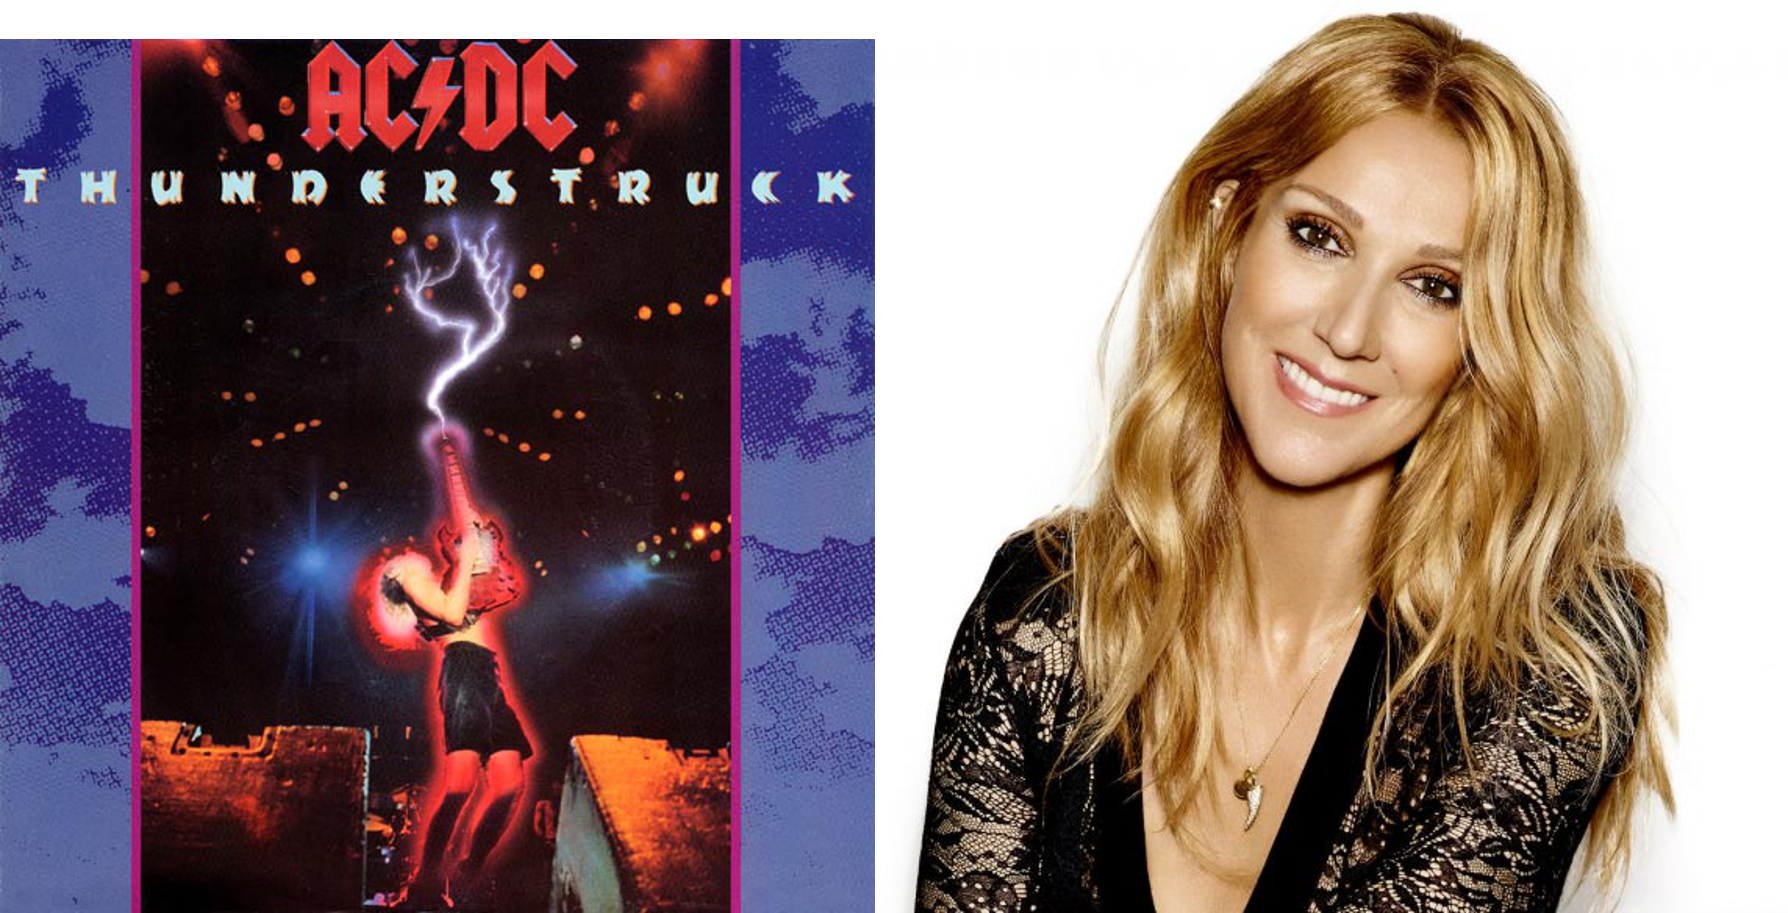 AC/DC and Celine Dion